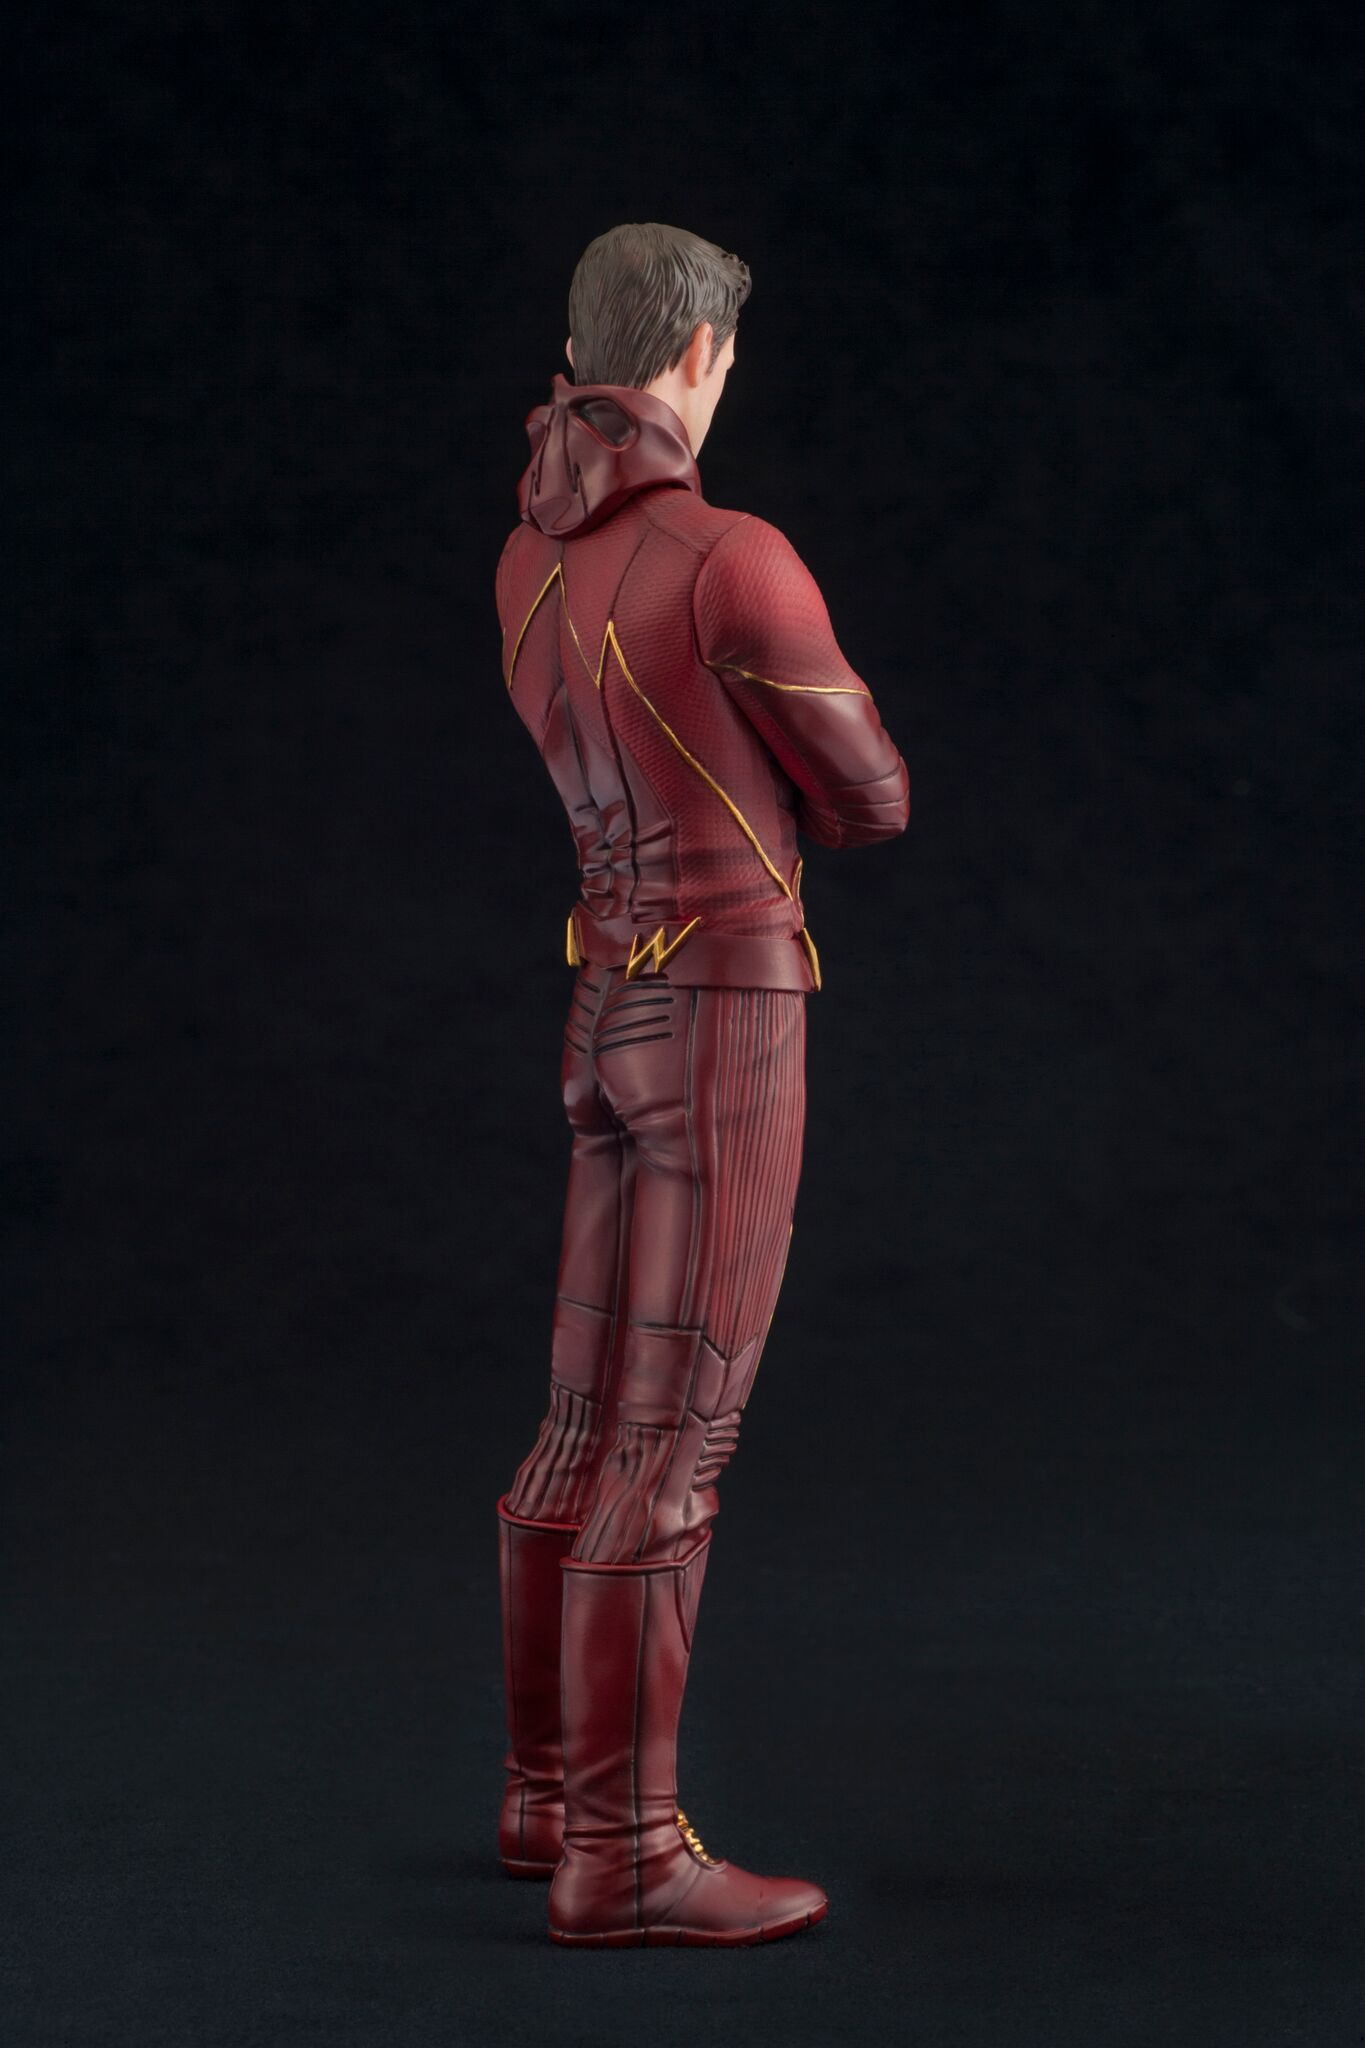 barry allen the flash figure